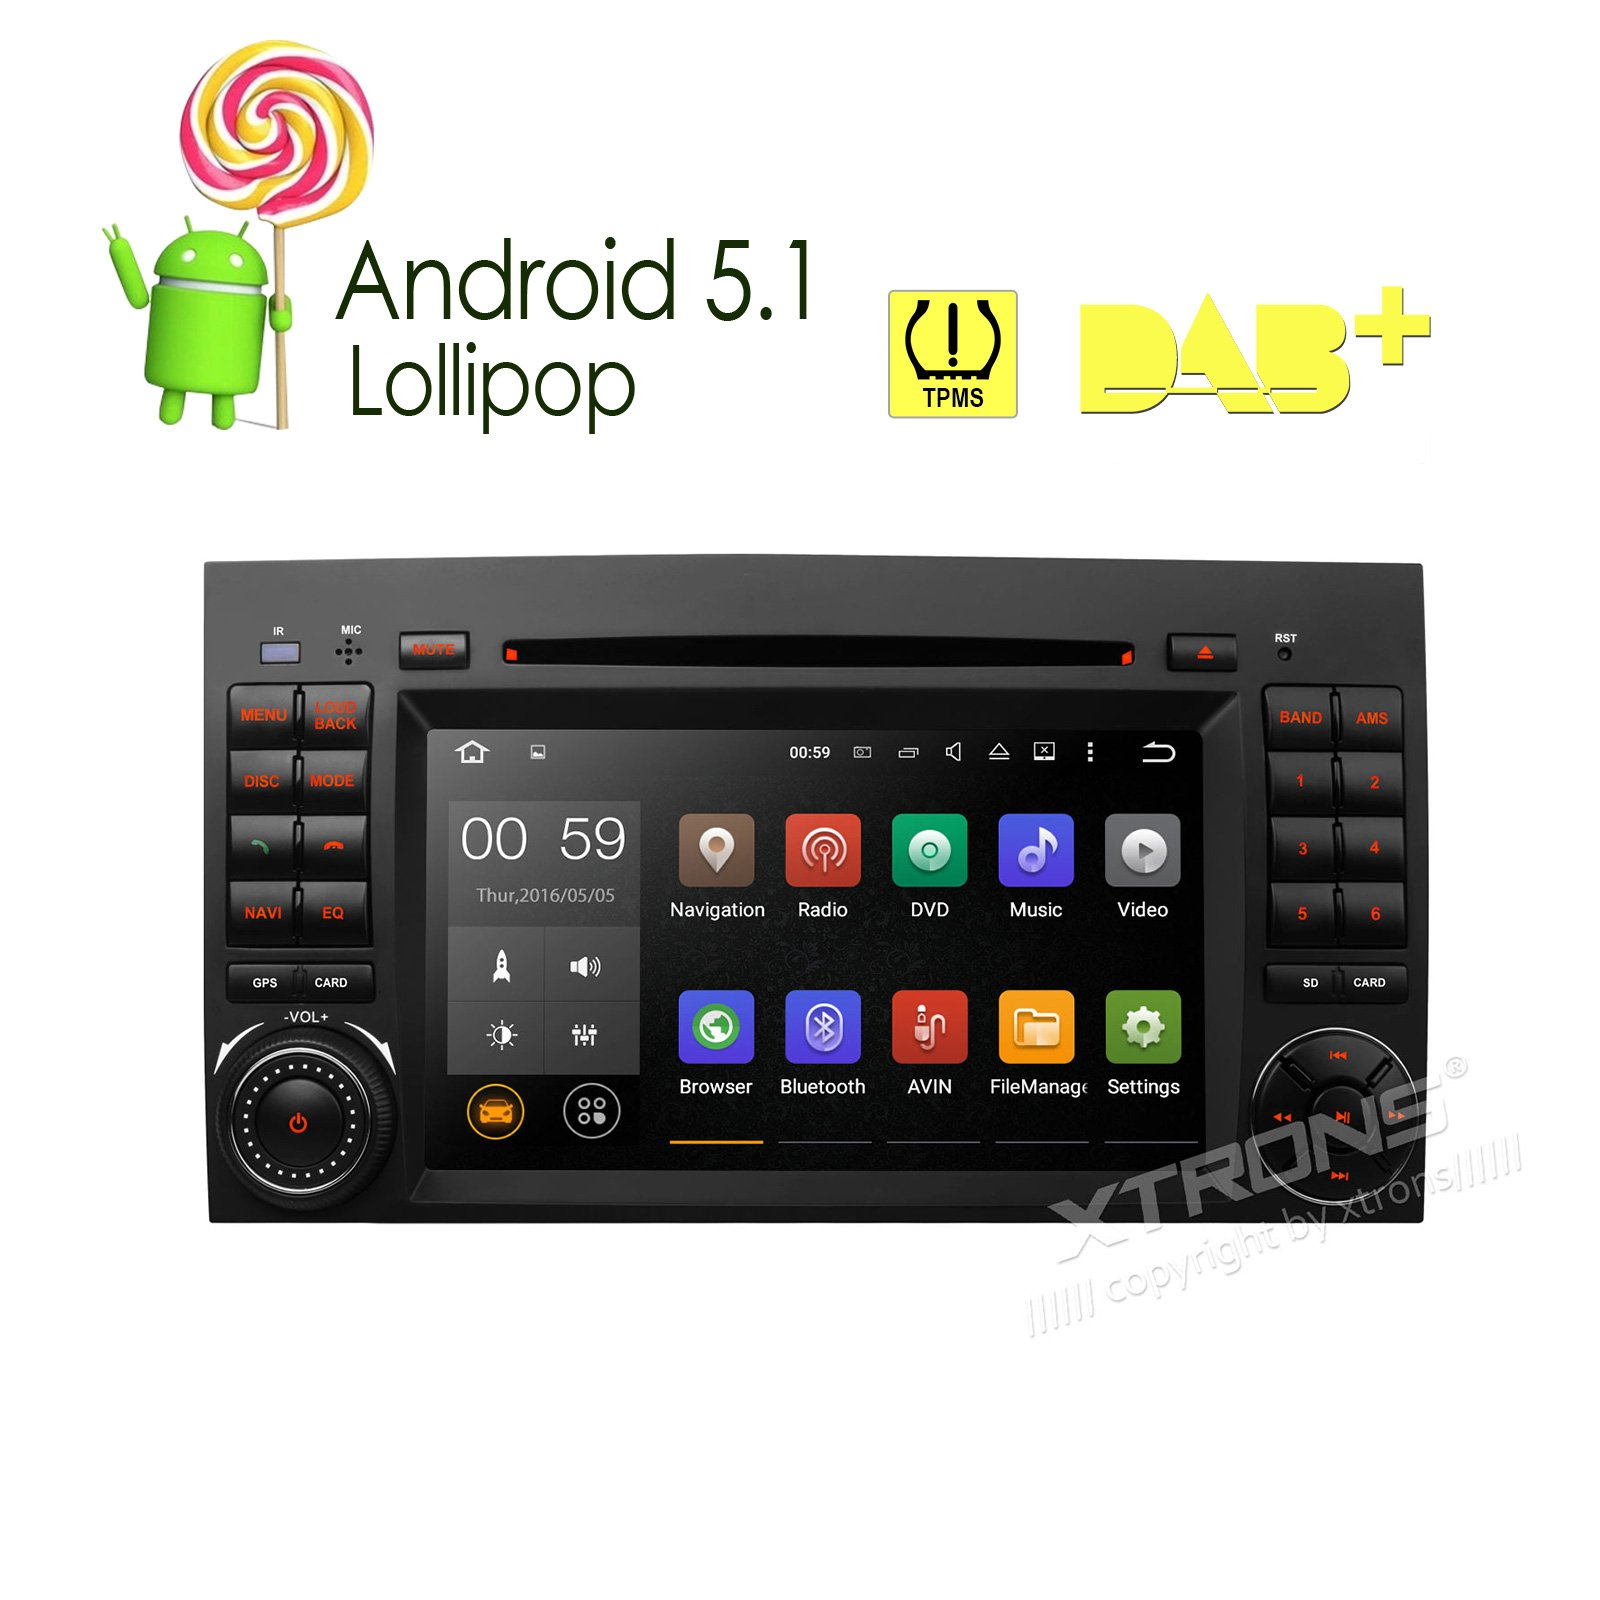 XTRONS 7'' Android 5.1 Lollipop Quad Core Car DVD Player with Screen Mirroring Function & OBD2 Tire Pressure Monitoring for Mercedes-Benz Sprinter B-W245